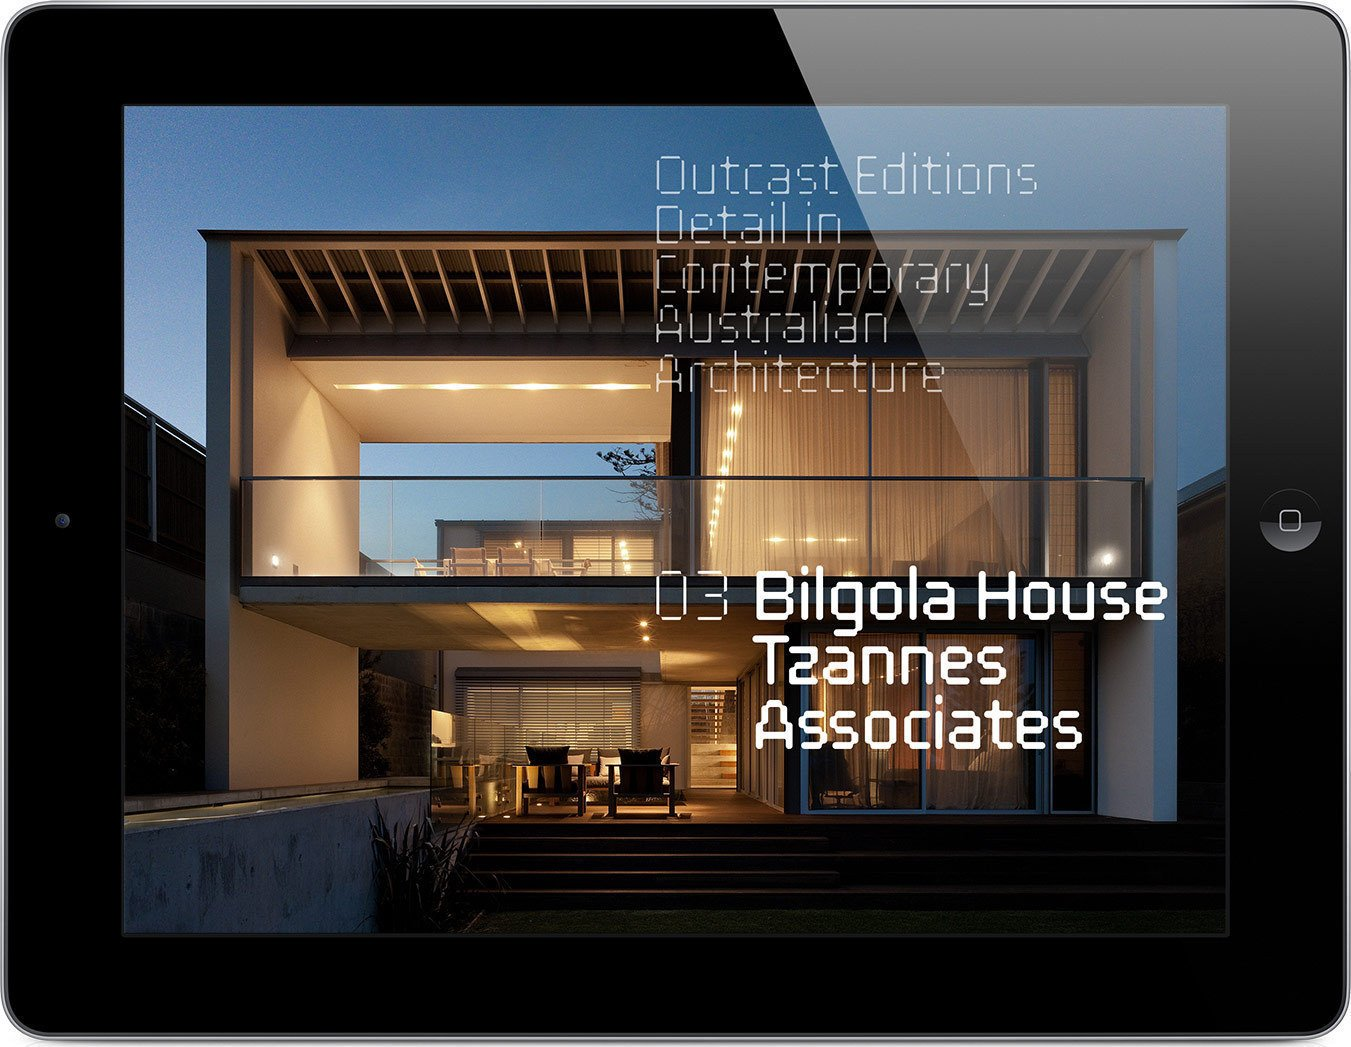 """<a href=""""http://www.outcasteditions.com/"""">Outcast Editions interactive digital books</a> 